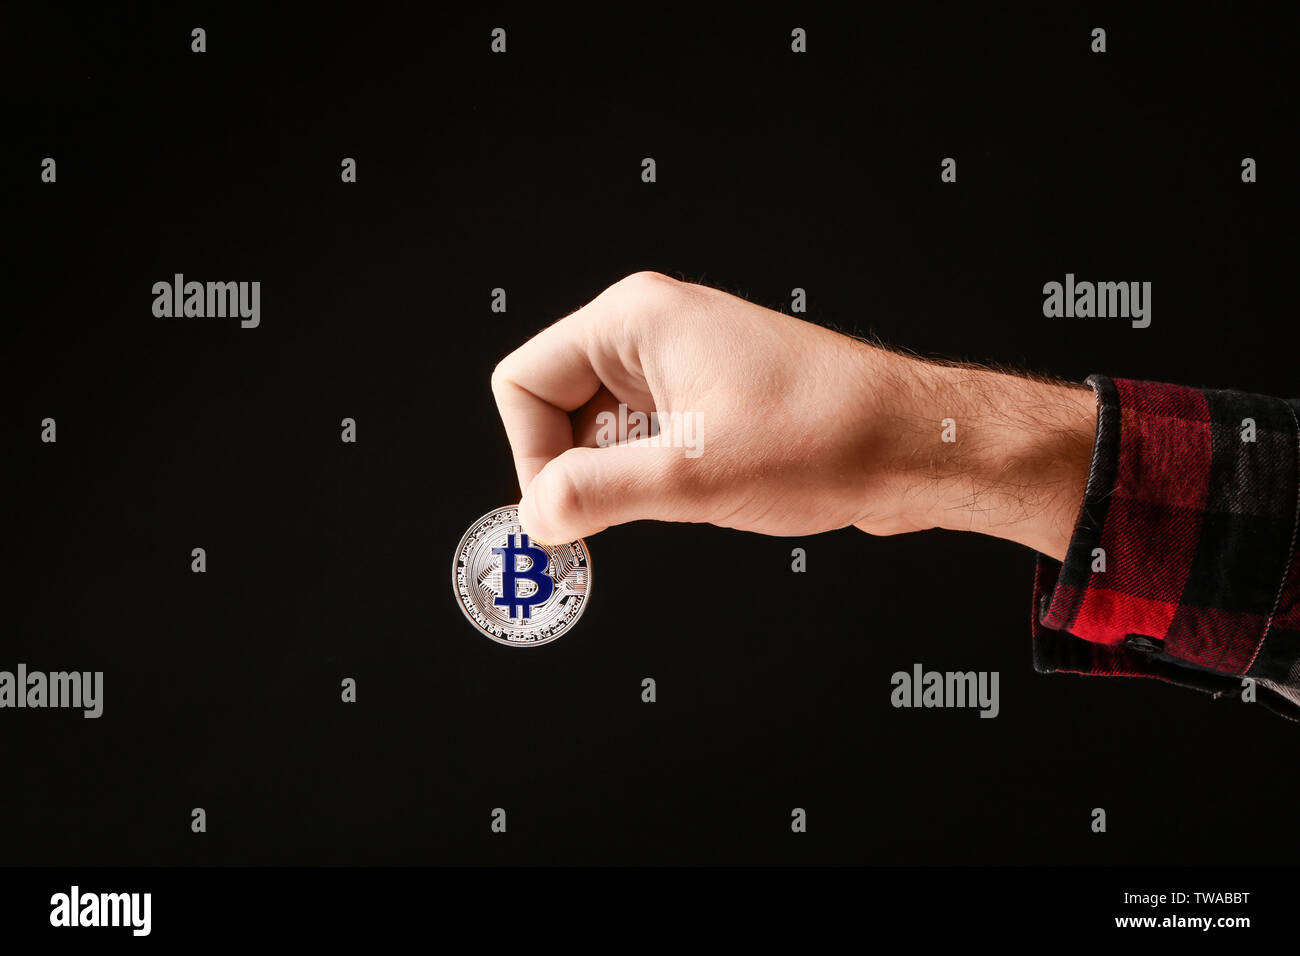 Man holding silver bitcoin on black background - Stock Image